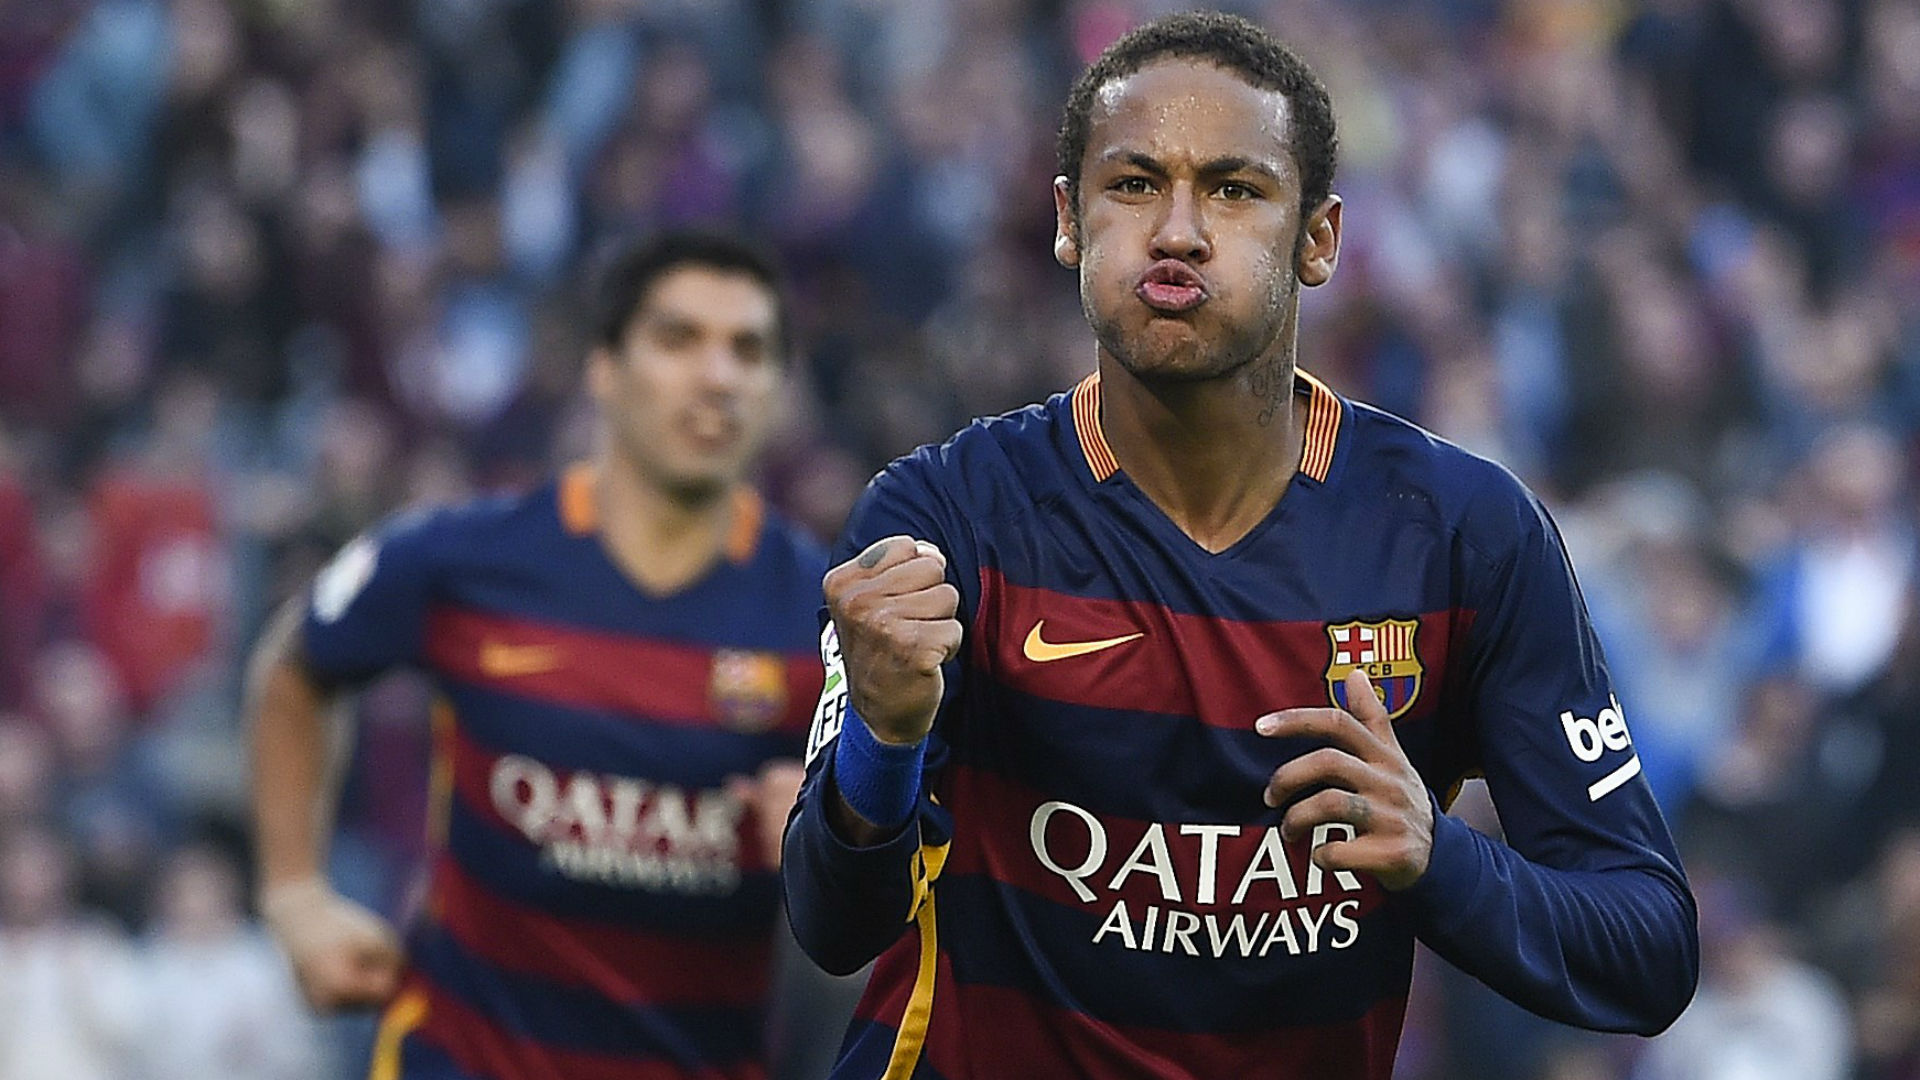 World's best? Neymar & Suarez putting Messi & Ronaldo in shade in 2015-16